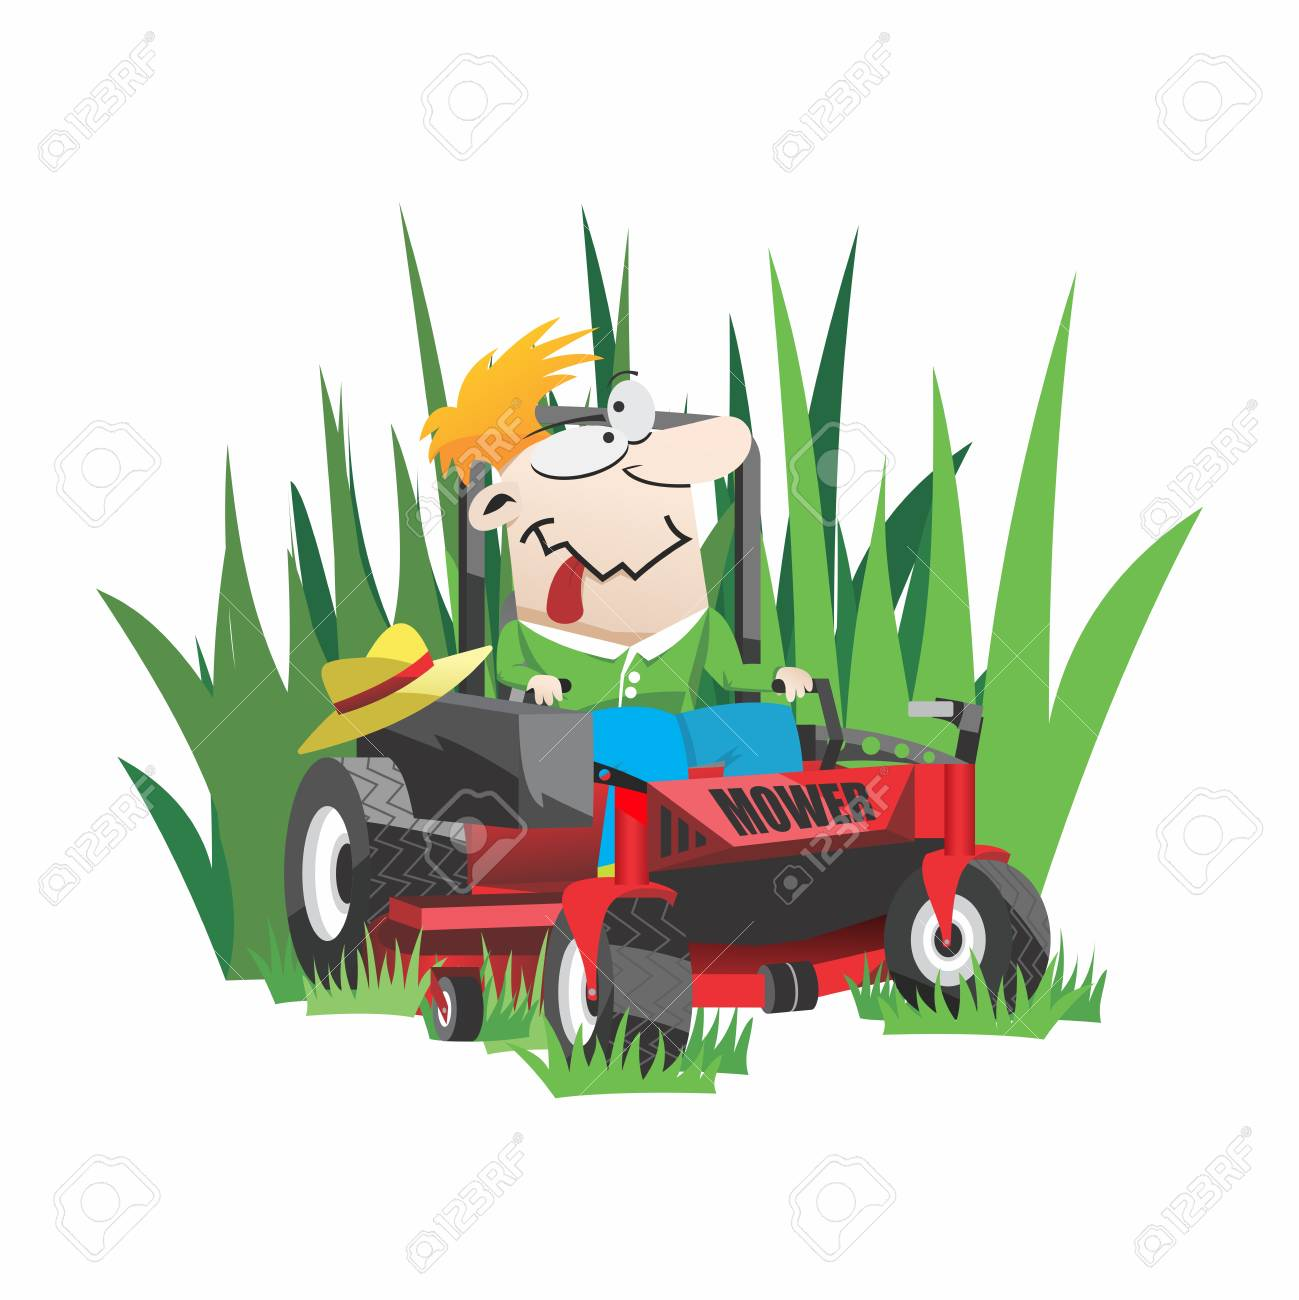 1299x1300 Funny Lawn Mower Pictures Clip Art,lawn.free Download Funny Cute Memes